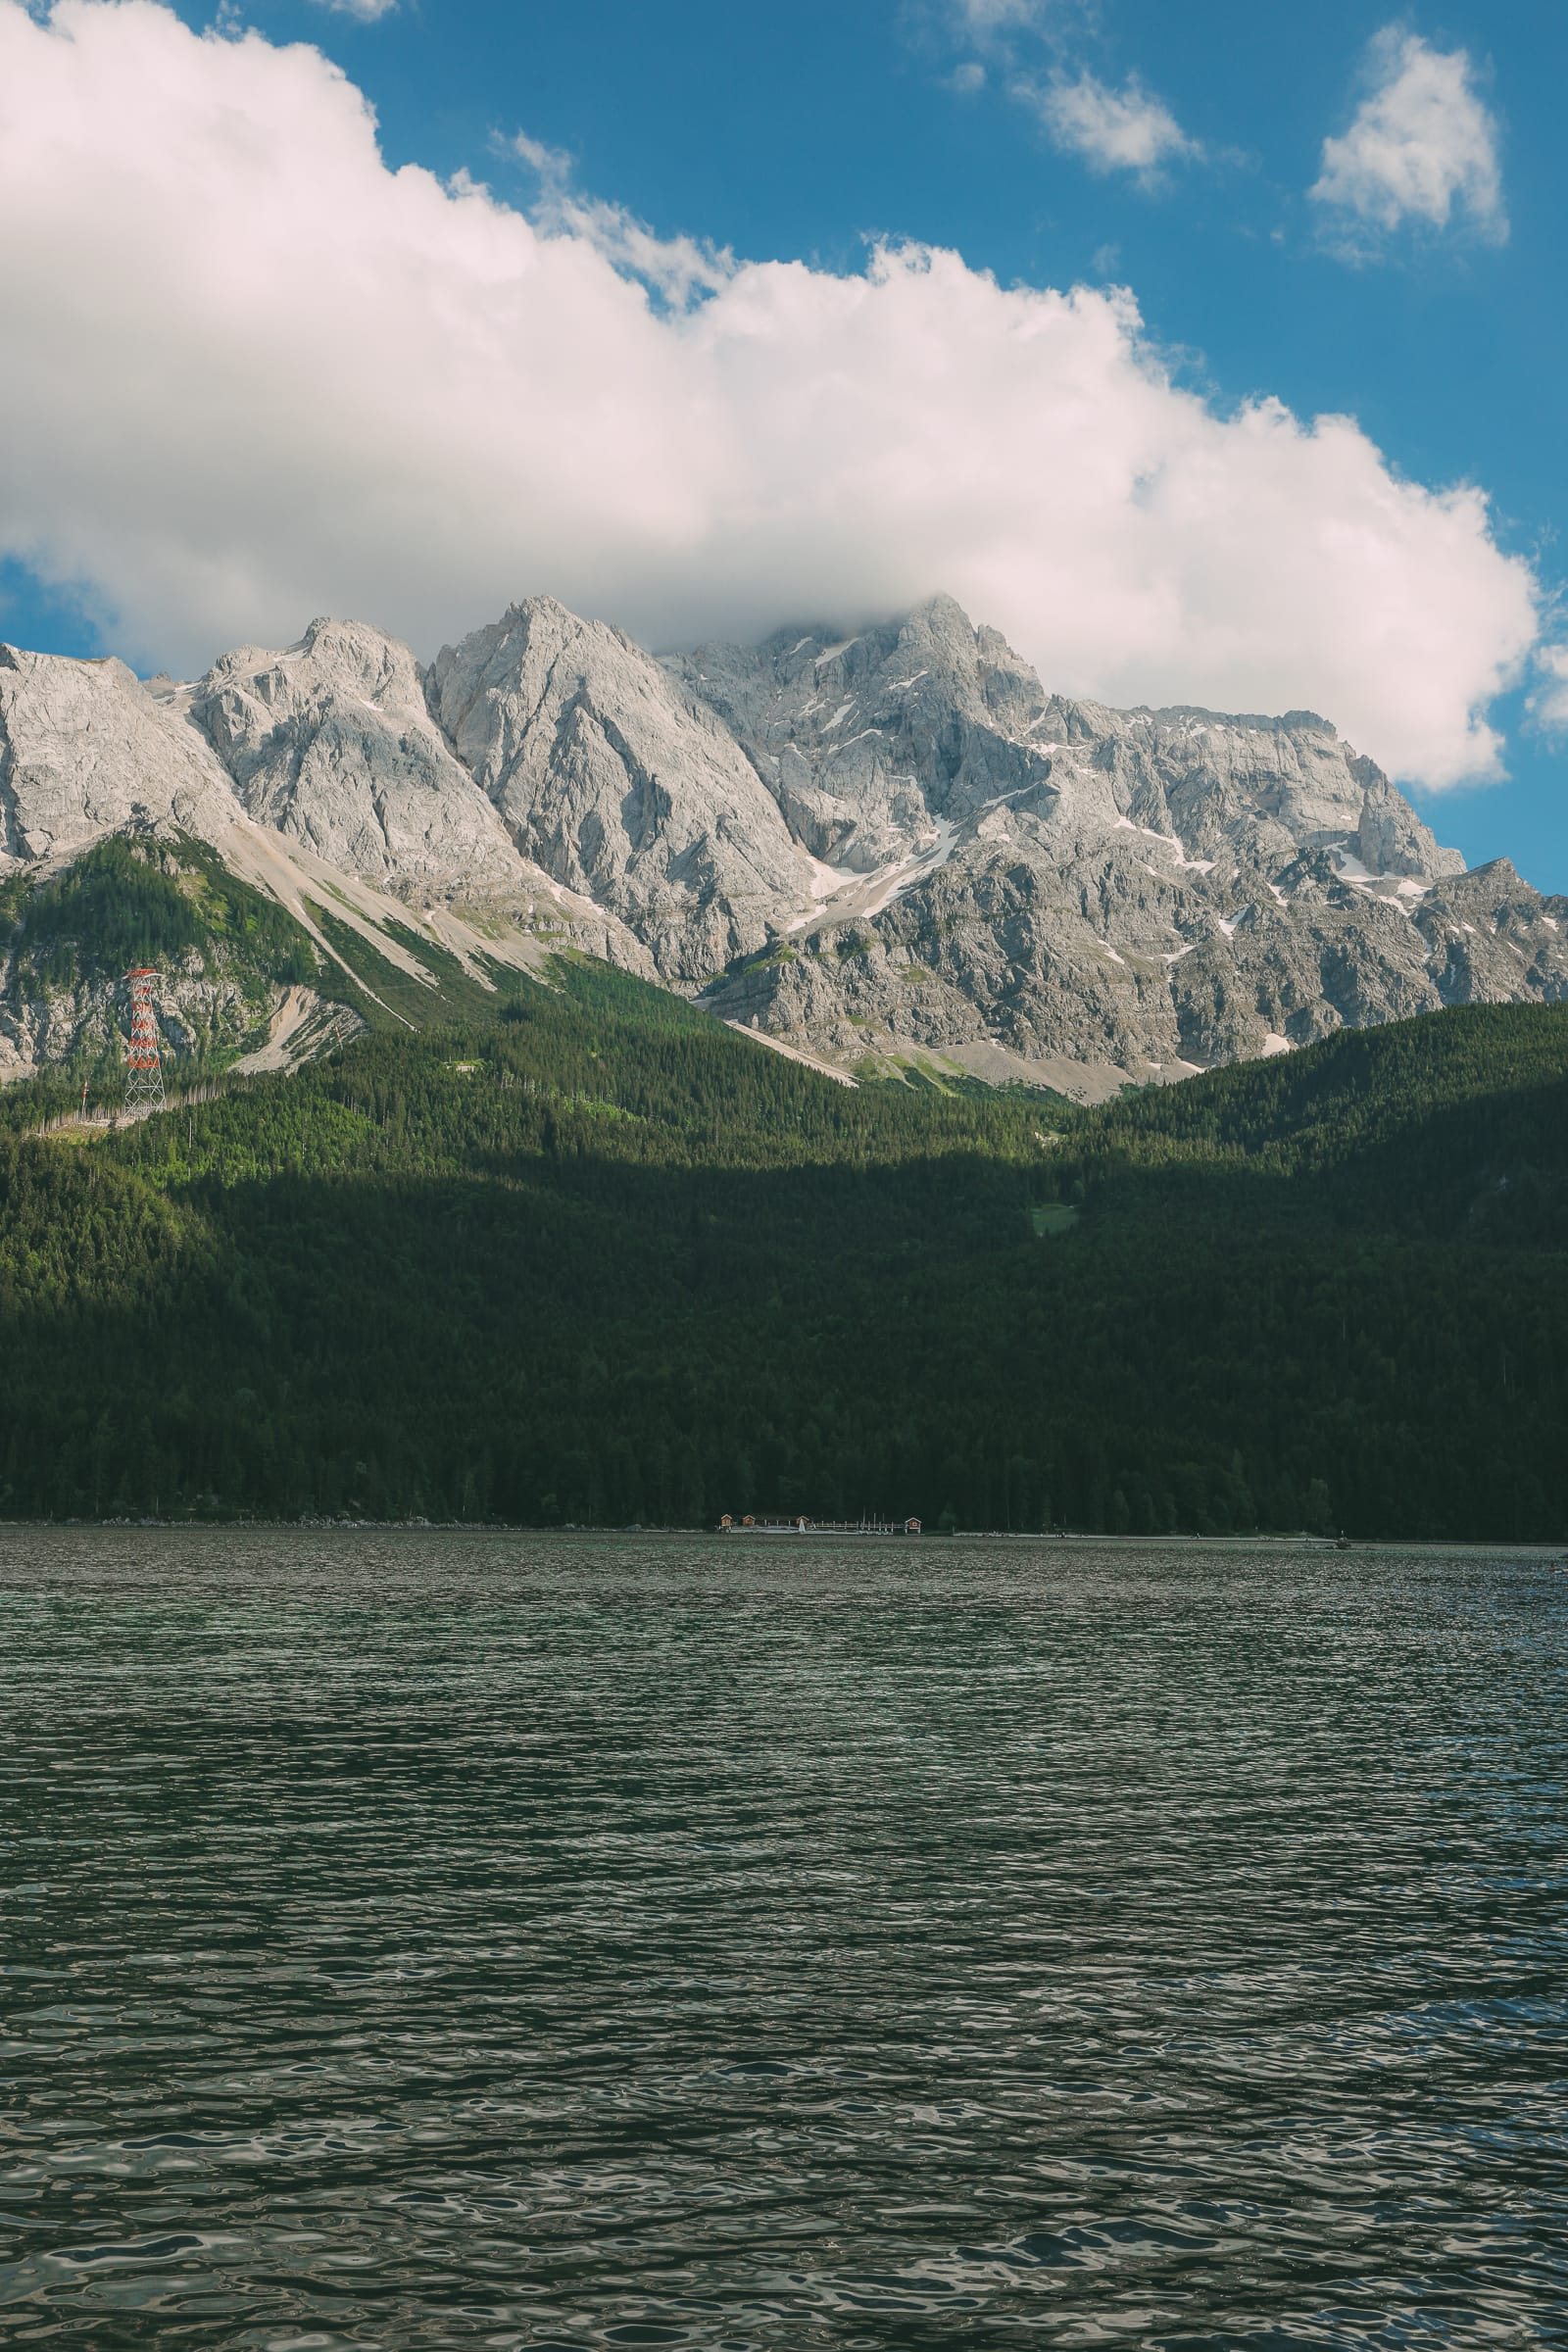 Zugspitze And Eibsee - The Tallest Mountain And One Of The Most Beautiful Lakes In Germany! (25)